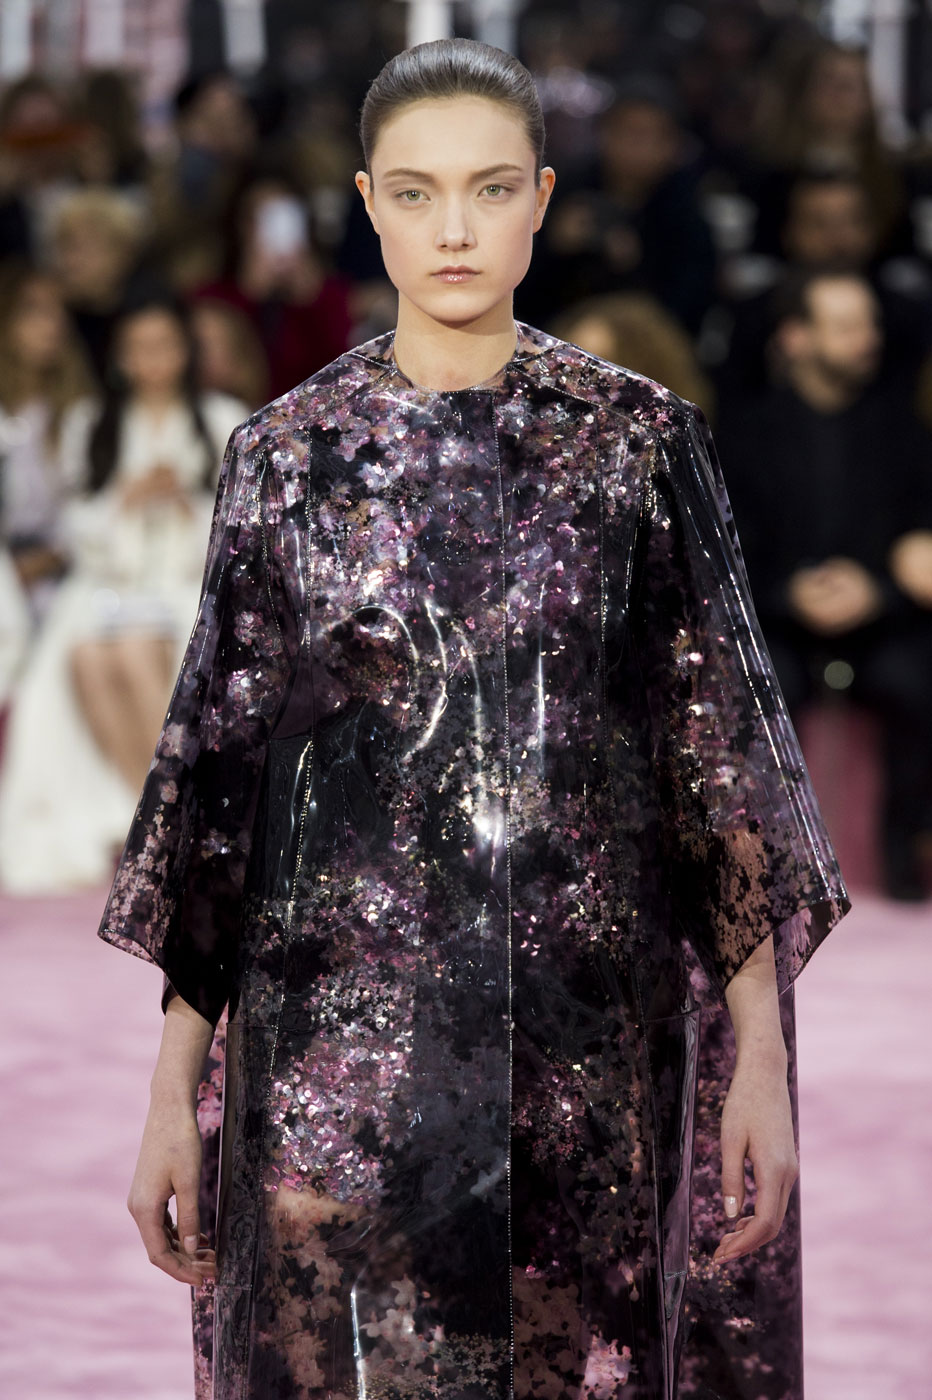 Christian-Dior-fashion-runway-show-haute-couture-paris-spring-summer-2015-the-impression-052